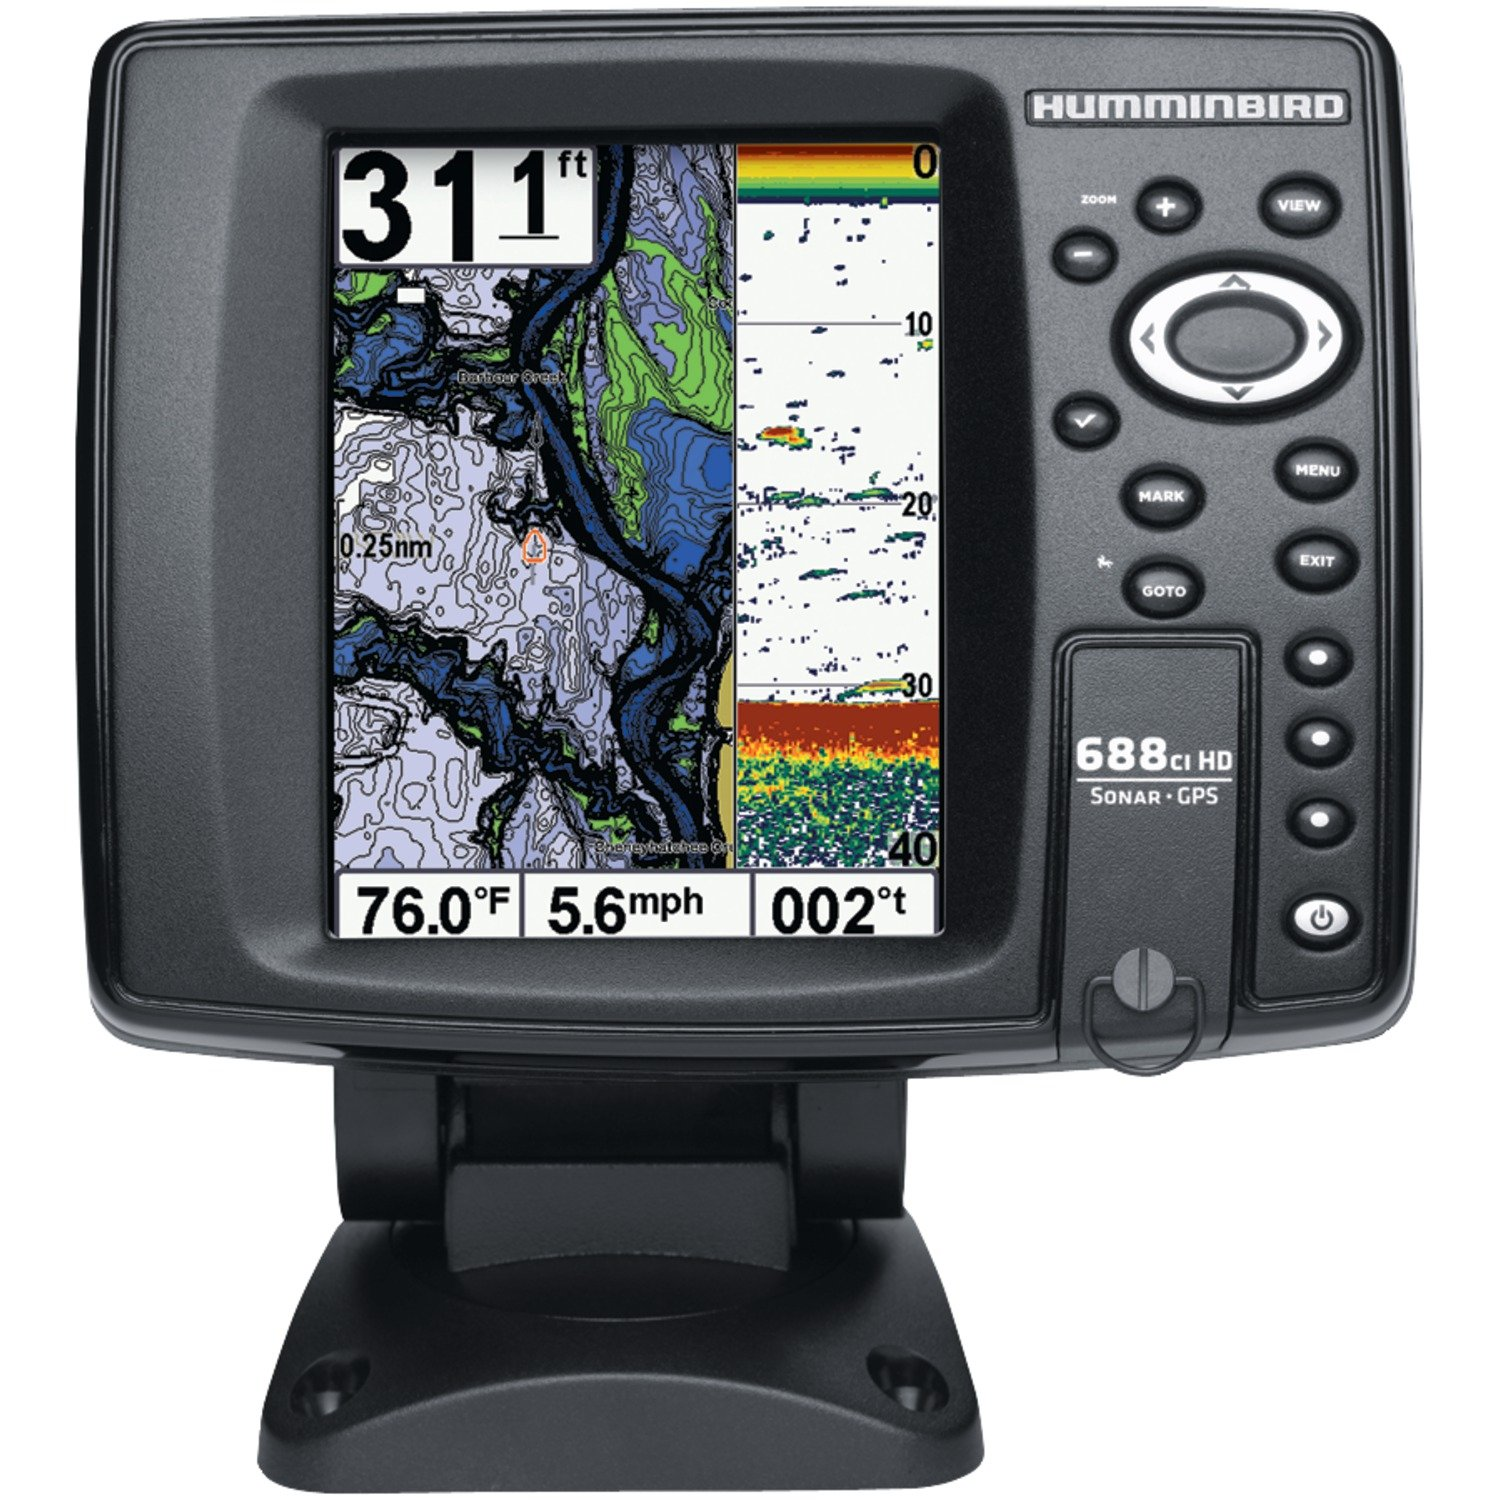 Amazon.com: Humminbird 688 ci HD interna GPS/Sonar Combo ...